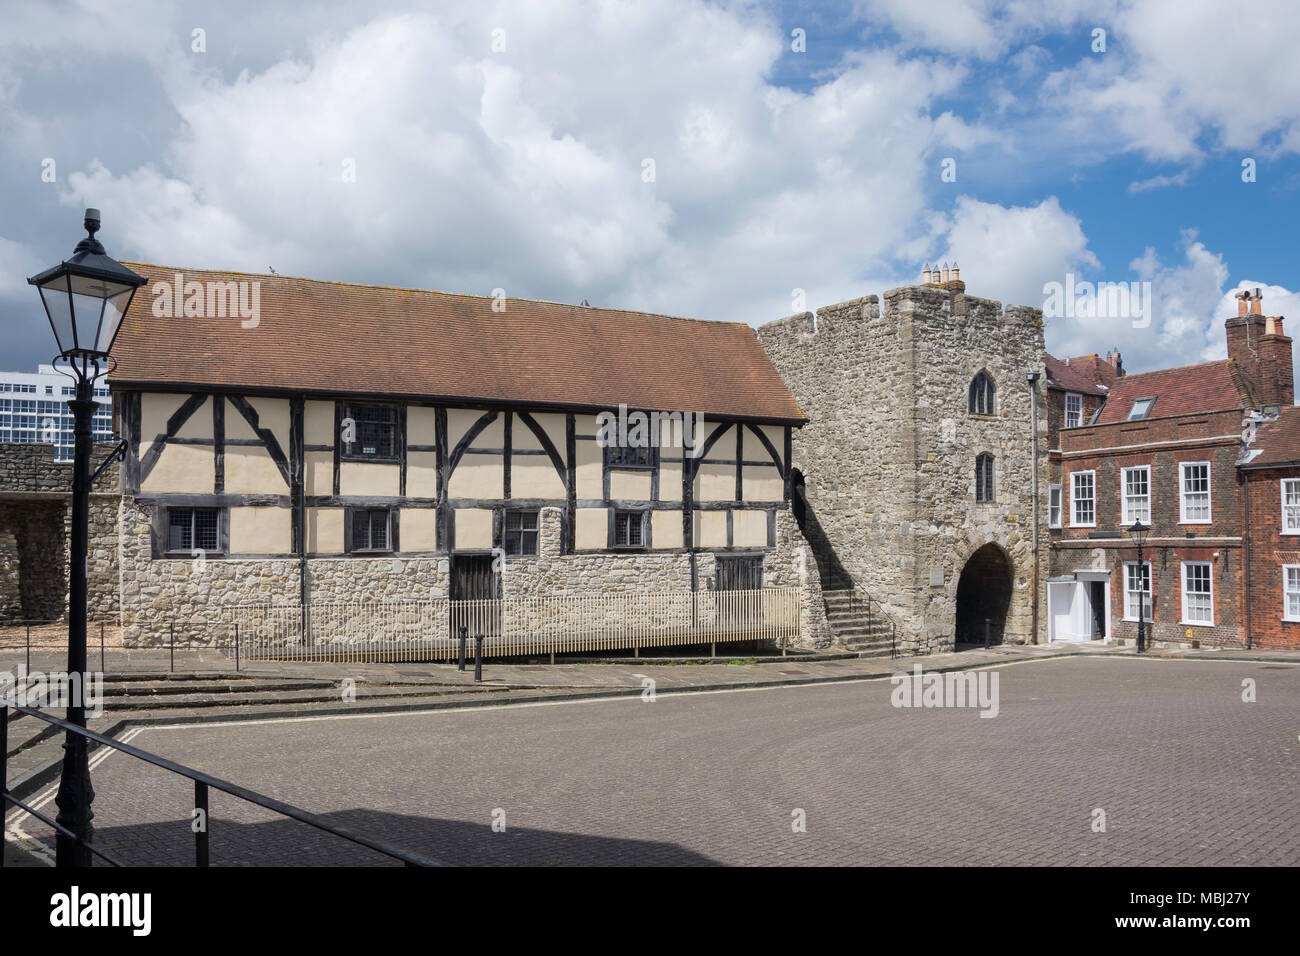 15th century Westgate Hall, Westgate Street, Old Town, Southampton, Hampshire, England, United Kingdom - Stock Image